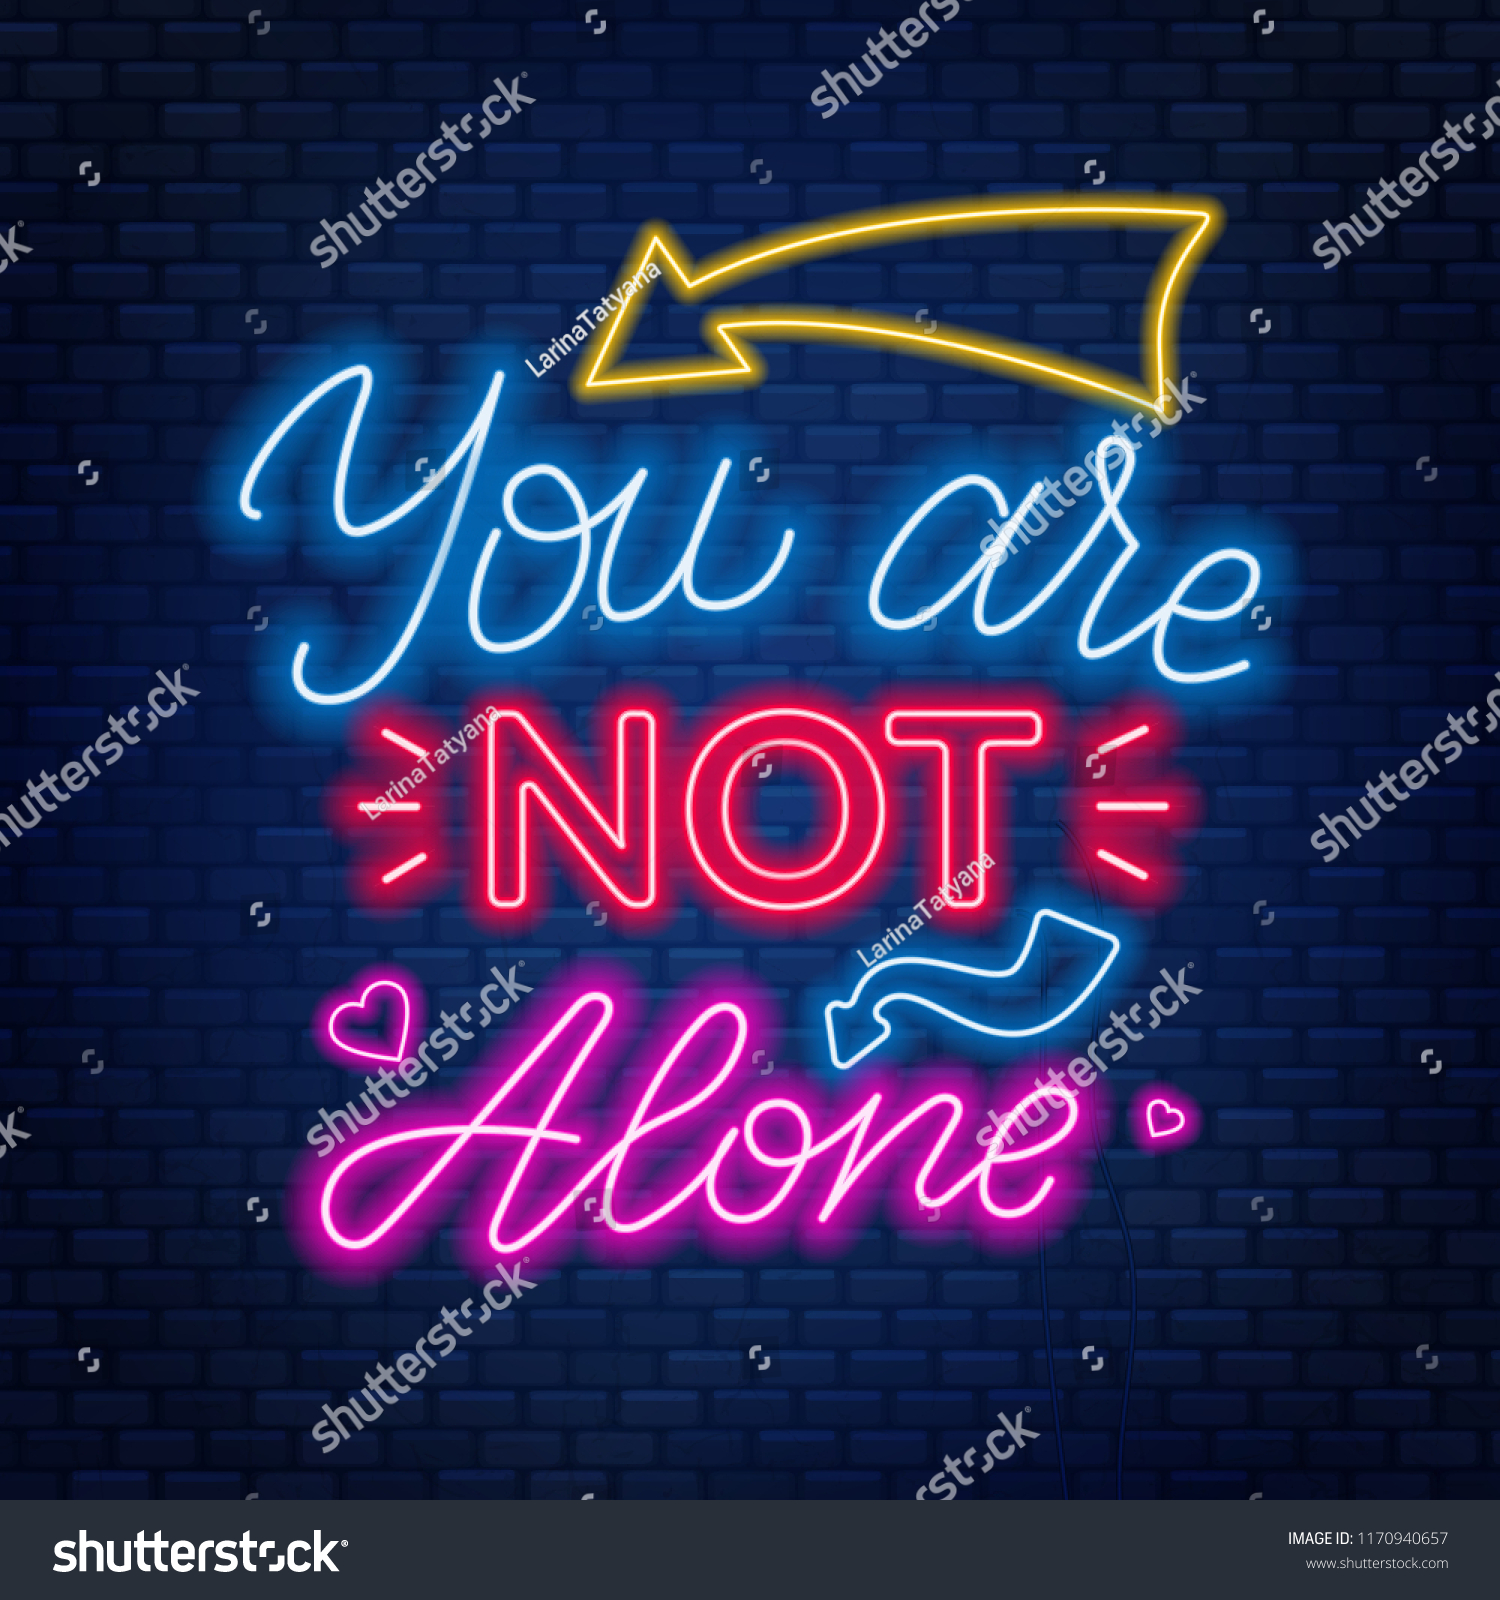 Neones Decorativos Neon Lettering Youre Not Alone Motivational Vector De Stock Libre